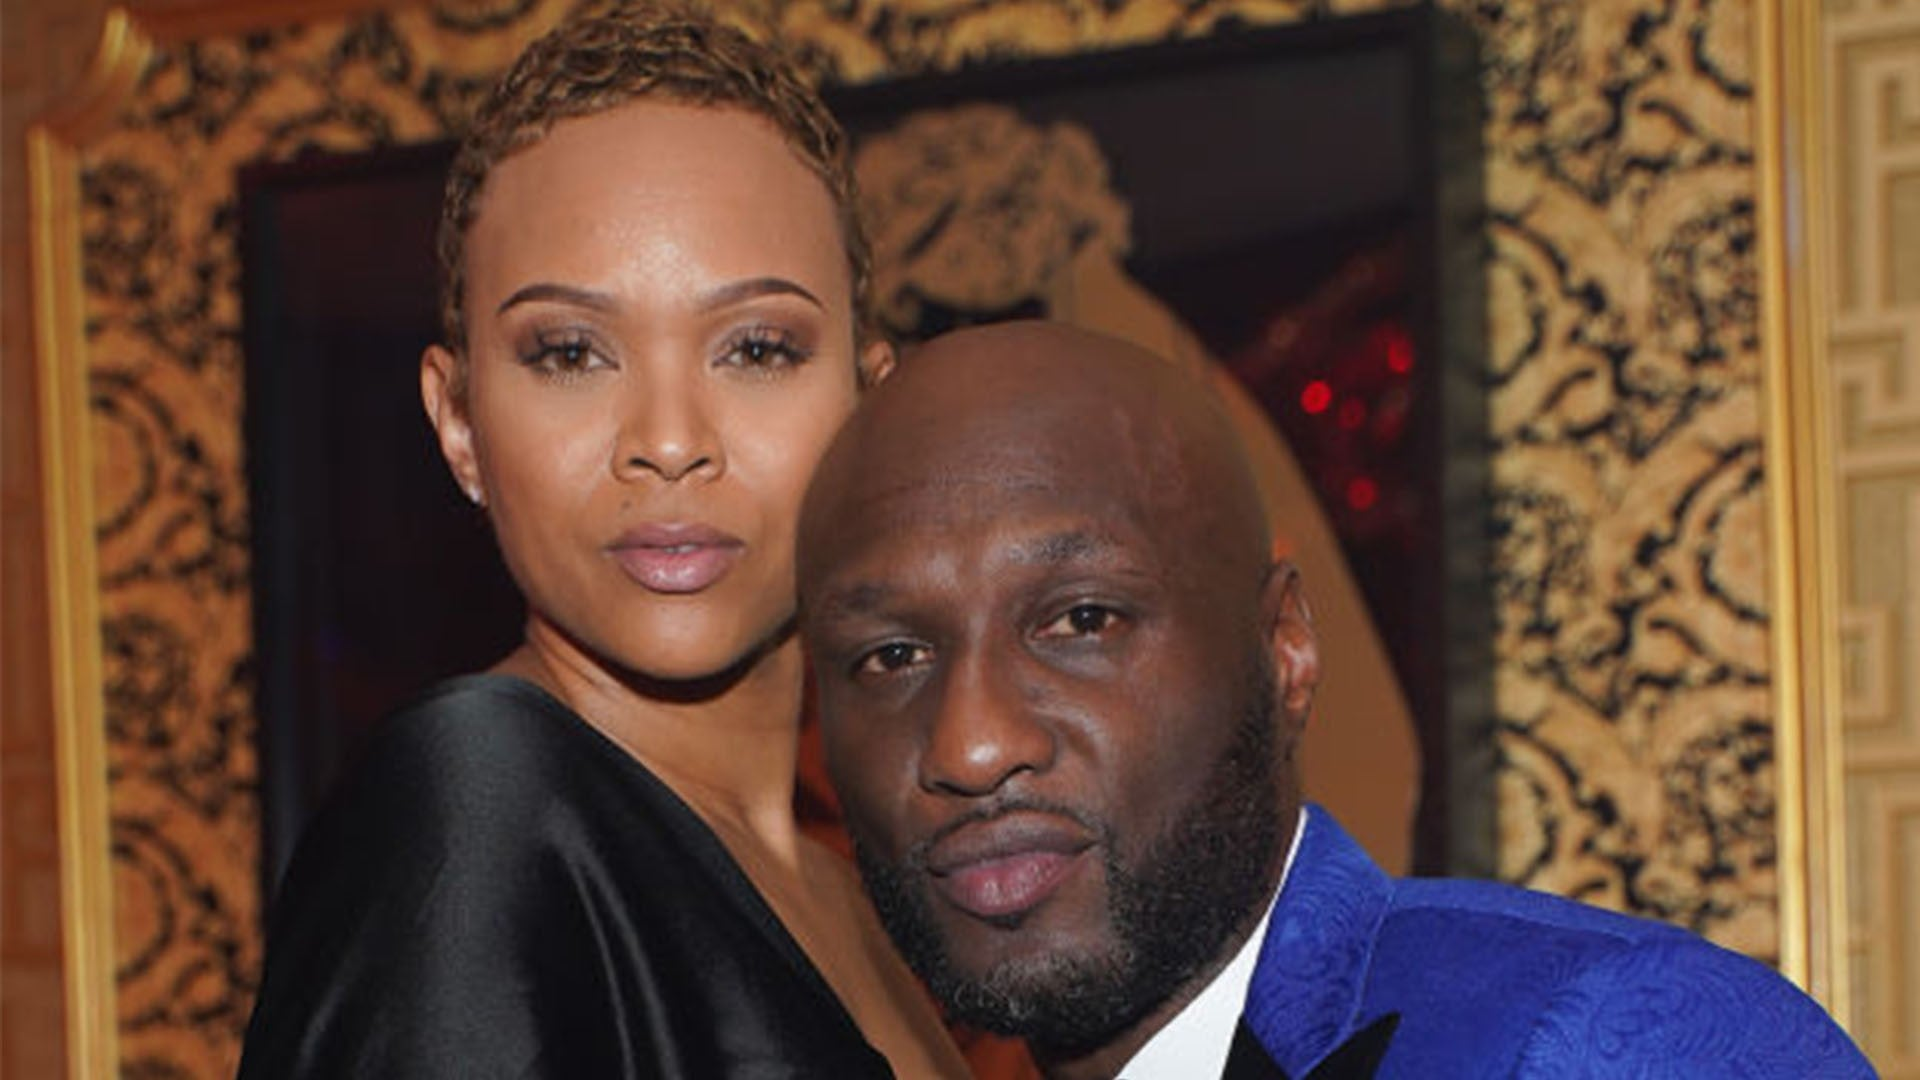 lamar-odom-throws-major-shade-at-his-bitter-ex-sabrina-parr-in-a-new-video